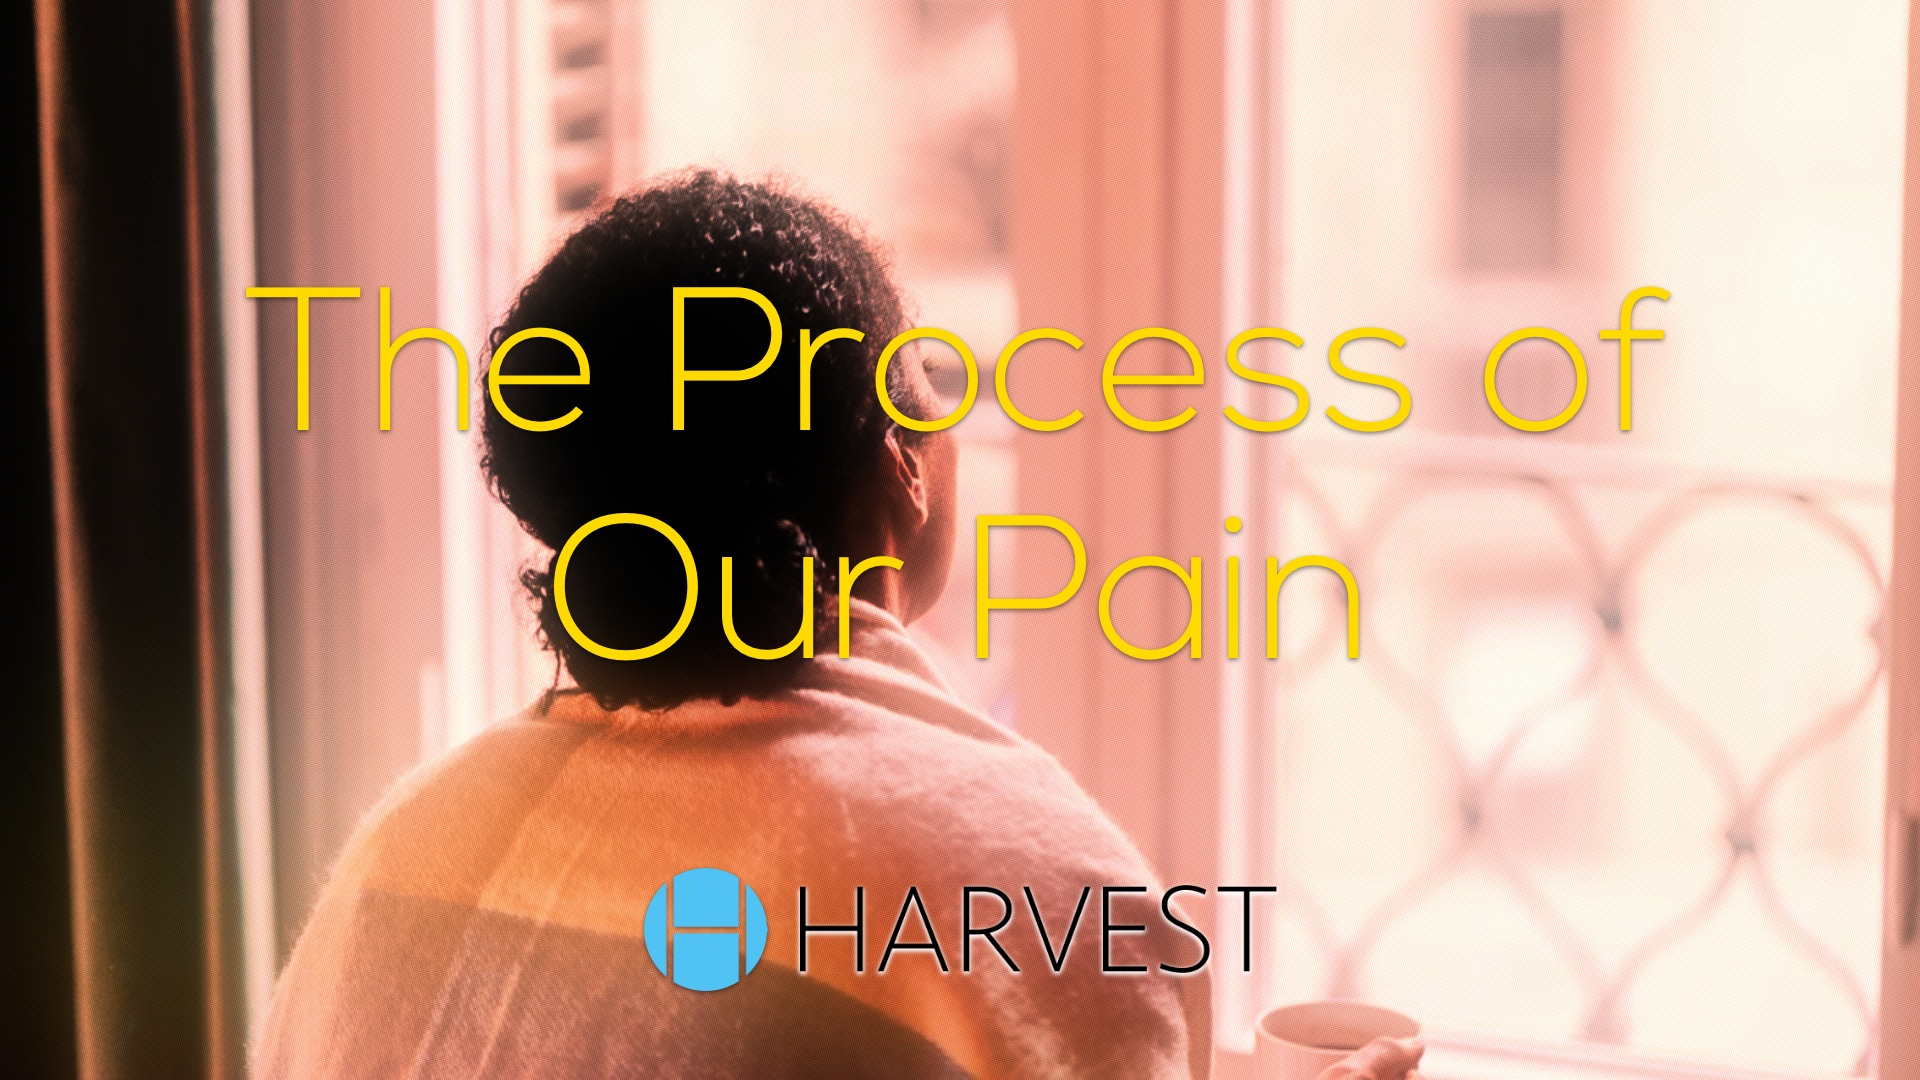 The Process of Our Pain